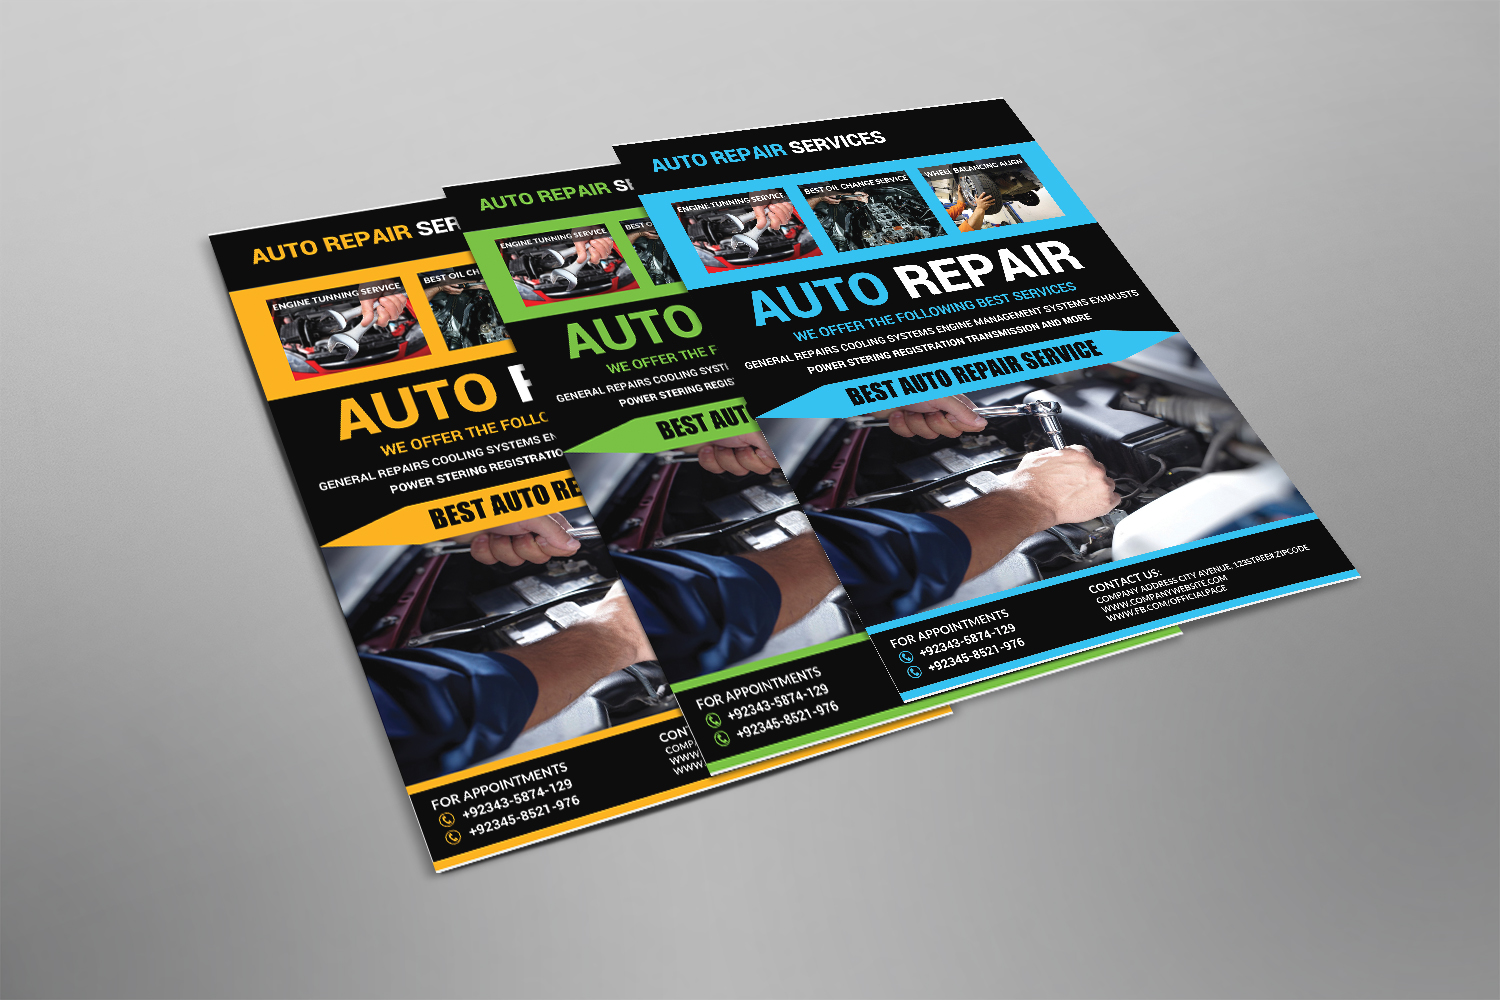 Auto Repair Flyer Design example image 2